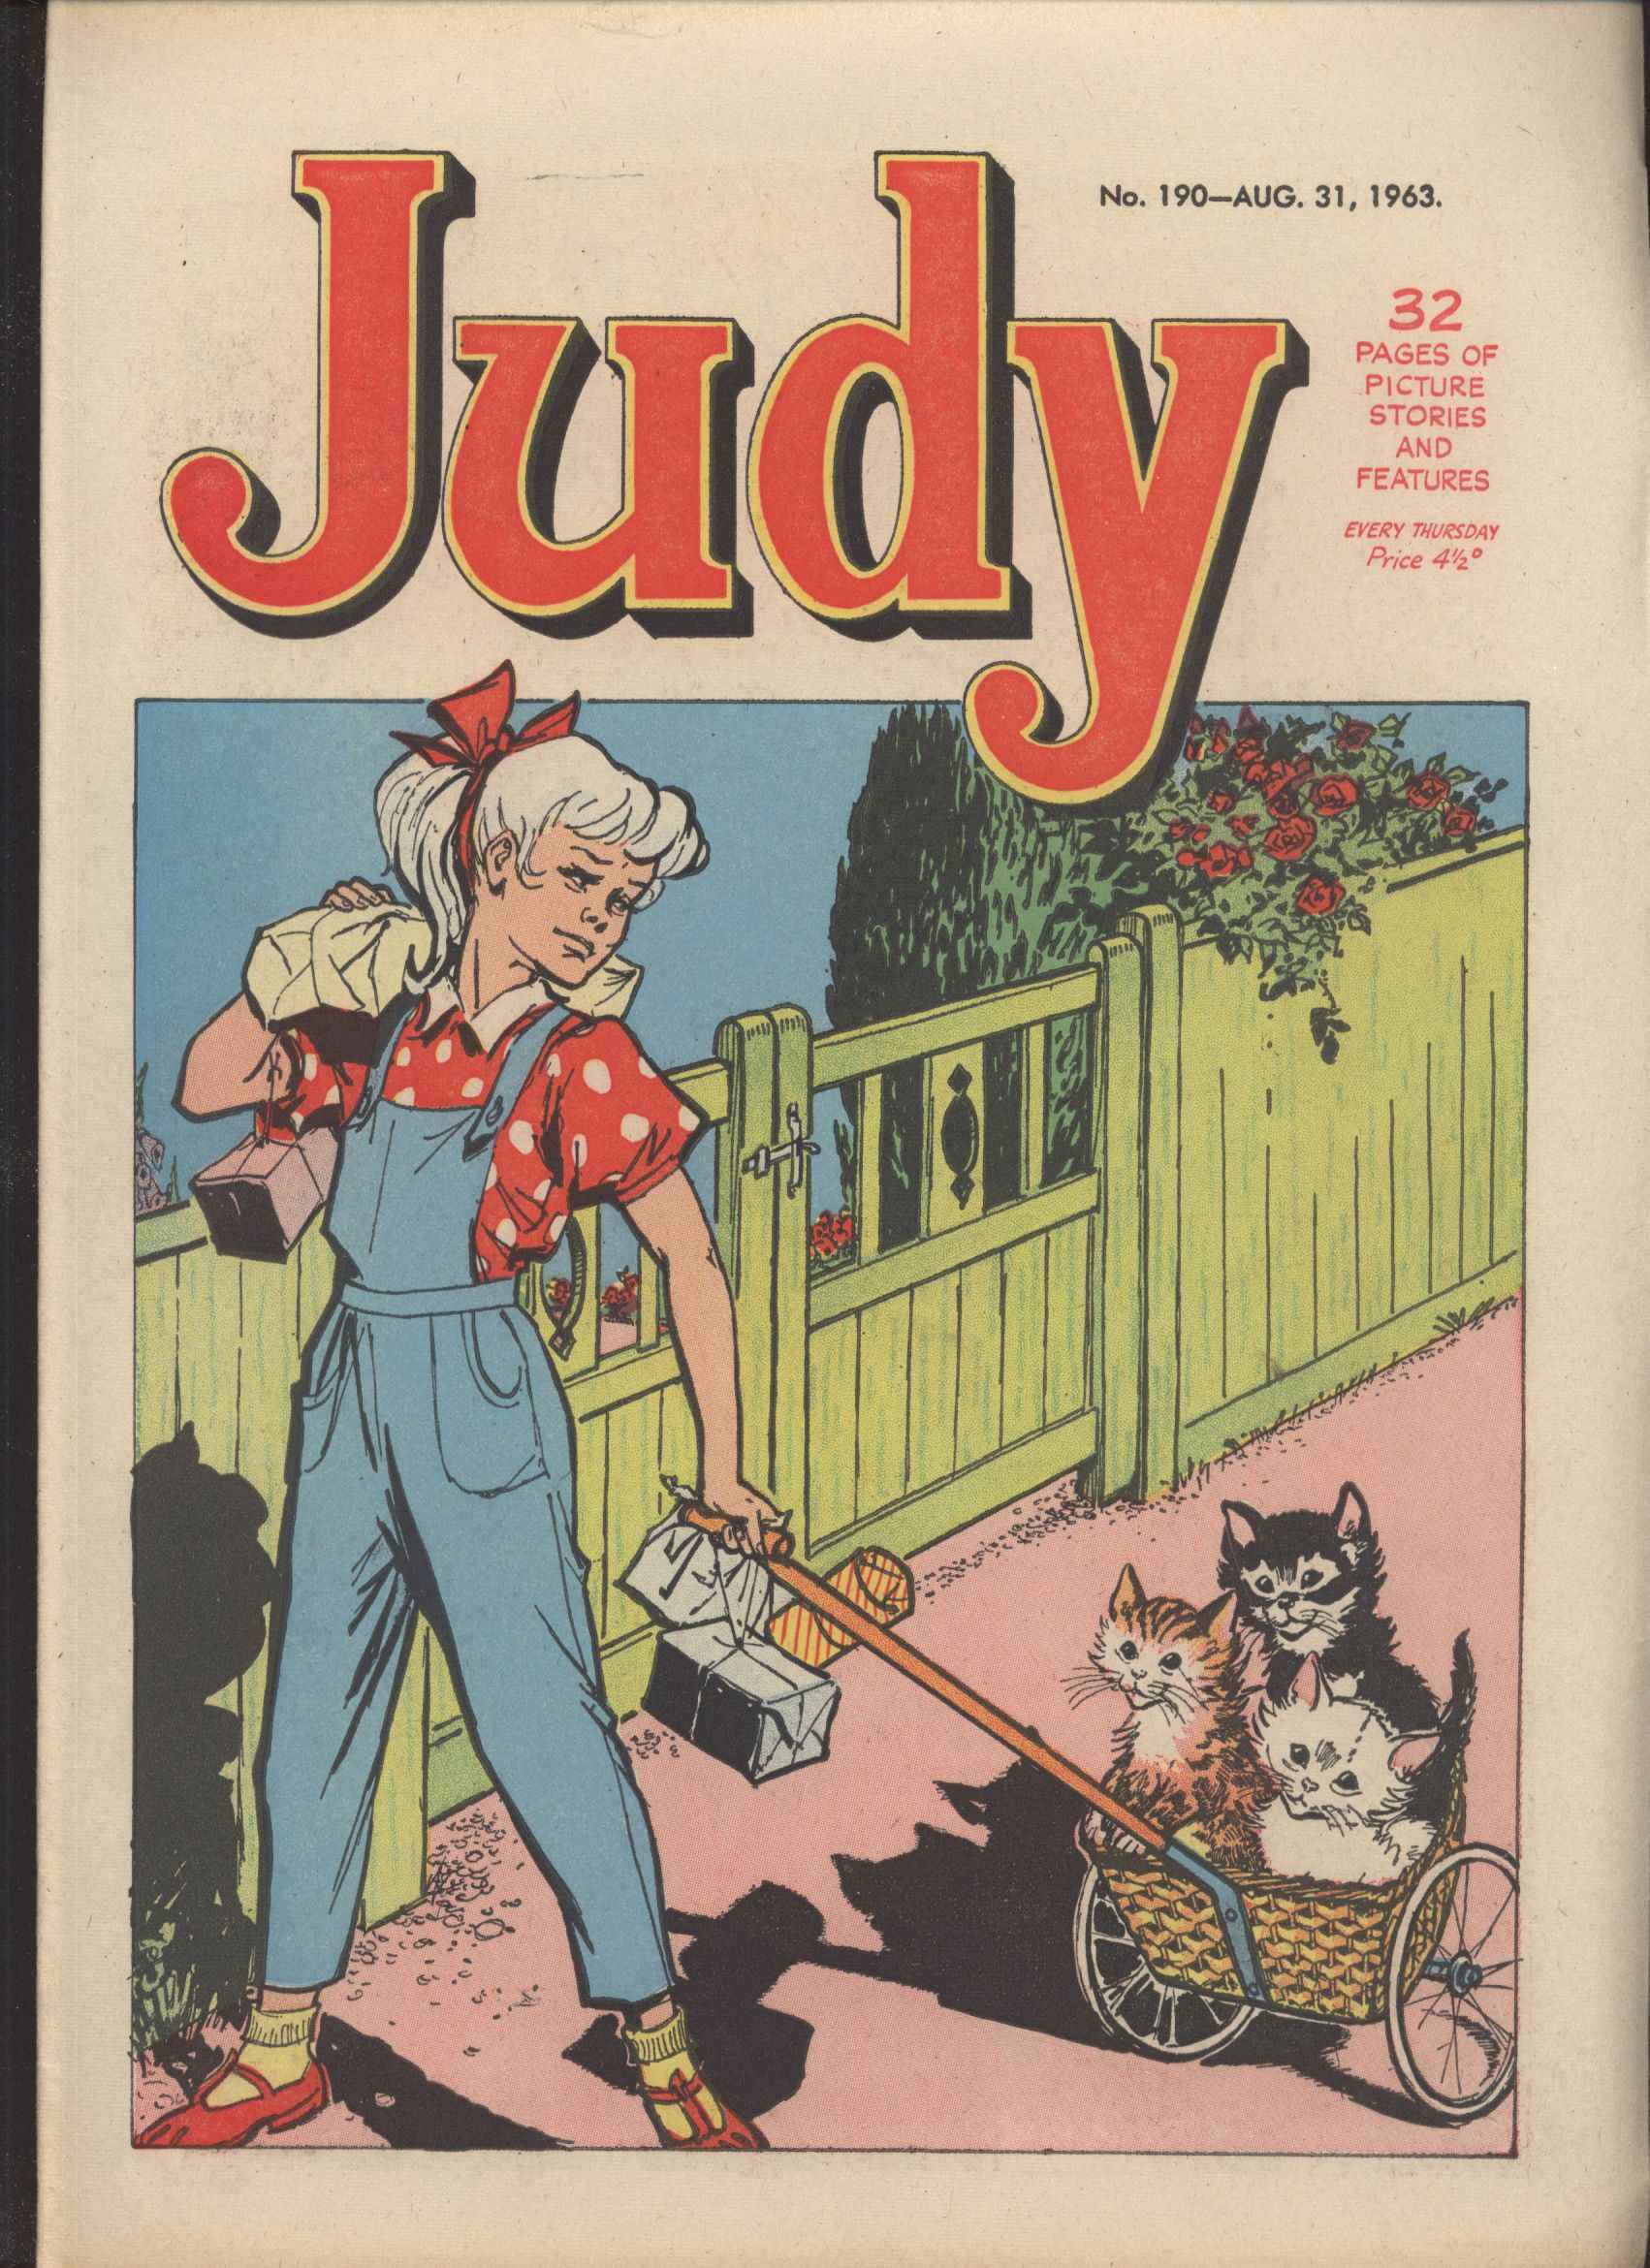 Read online Judy comic -  Issue #190 - 1